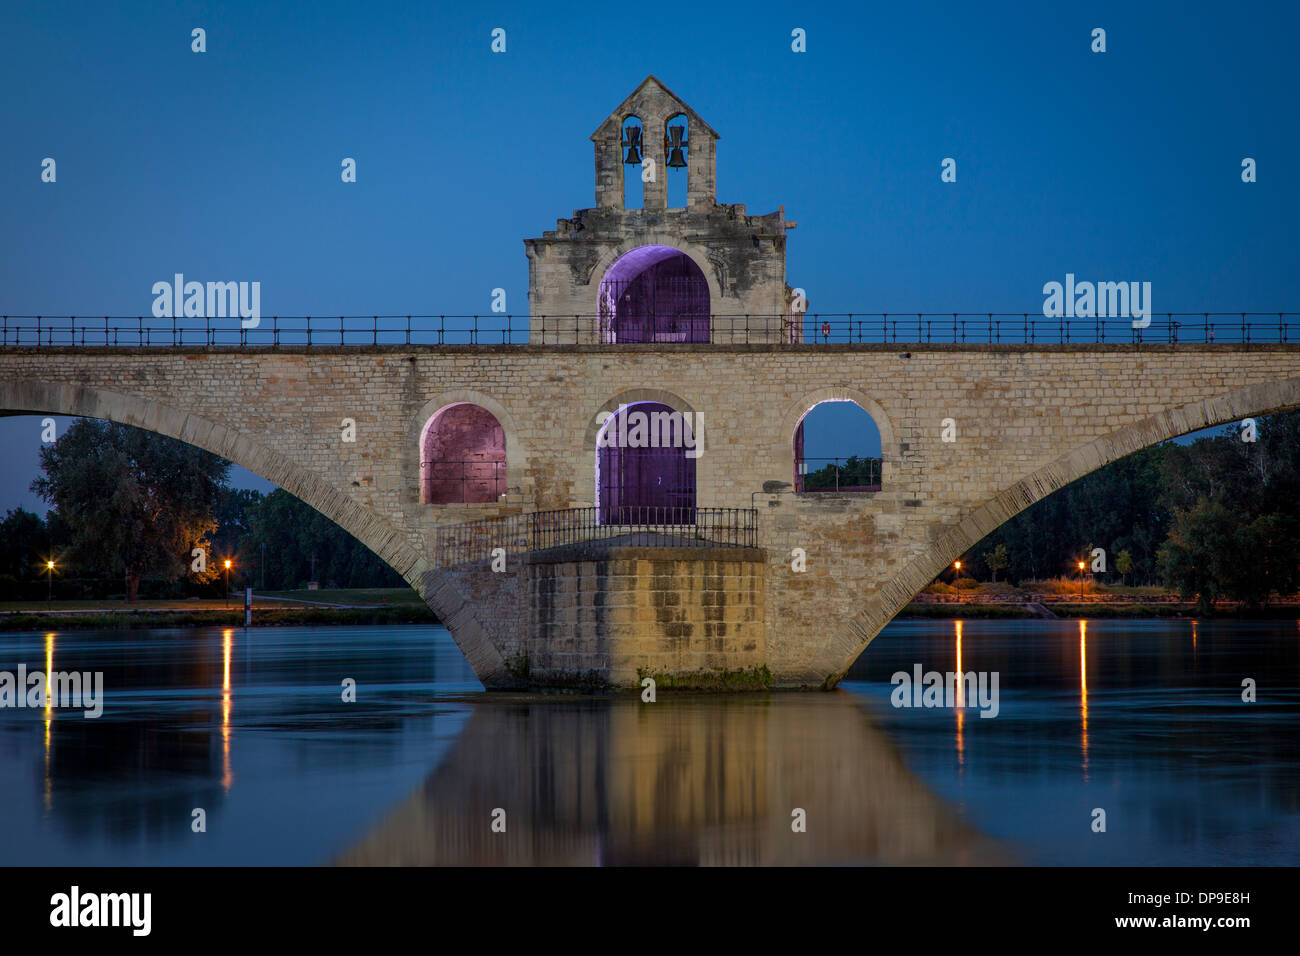 Pont Saint Benezet and Chapelle Saint Nicholas (12th C) over River Rhone at Avignon, Bouches-du-Rhone, Provence - Stock Image